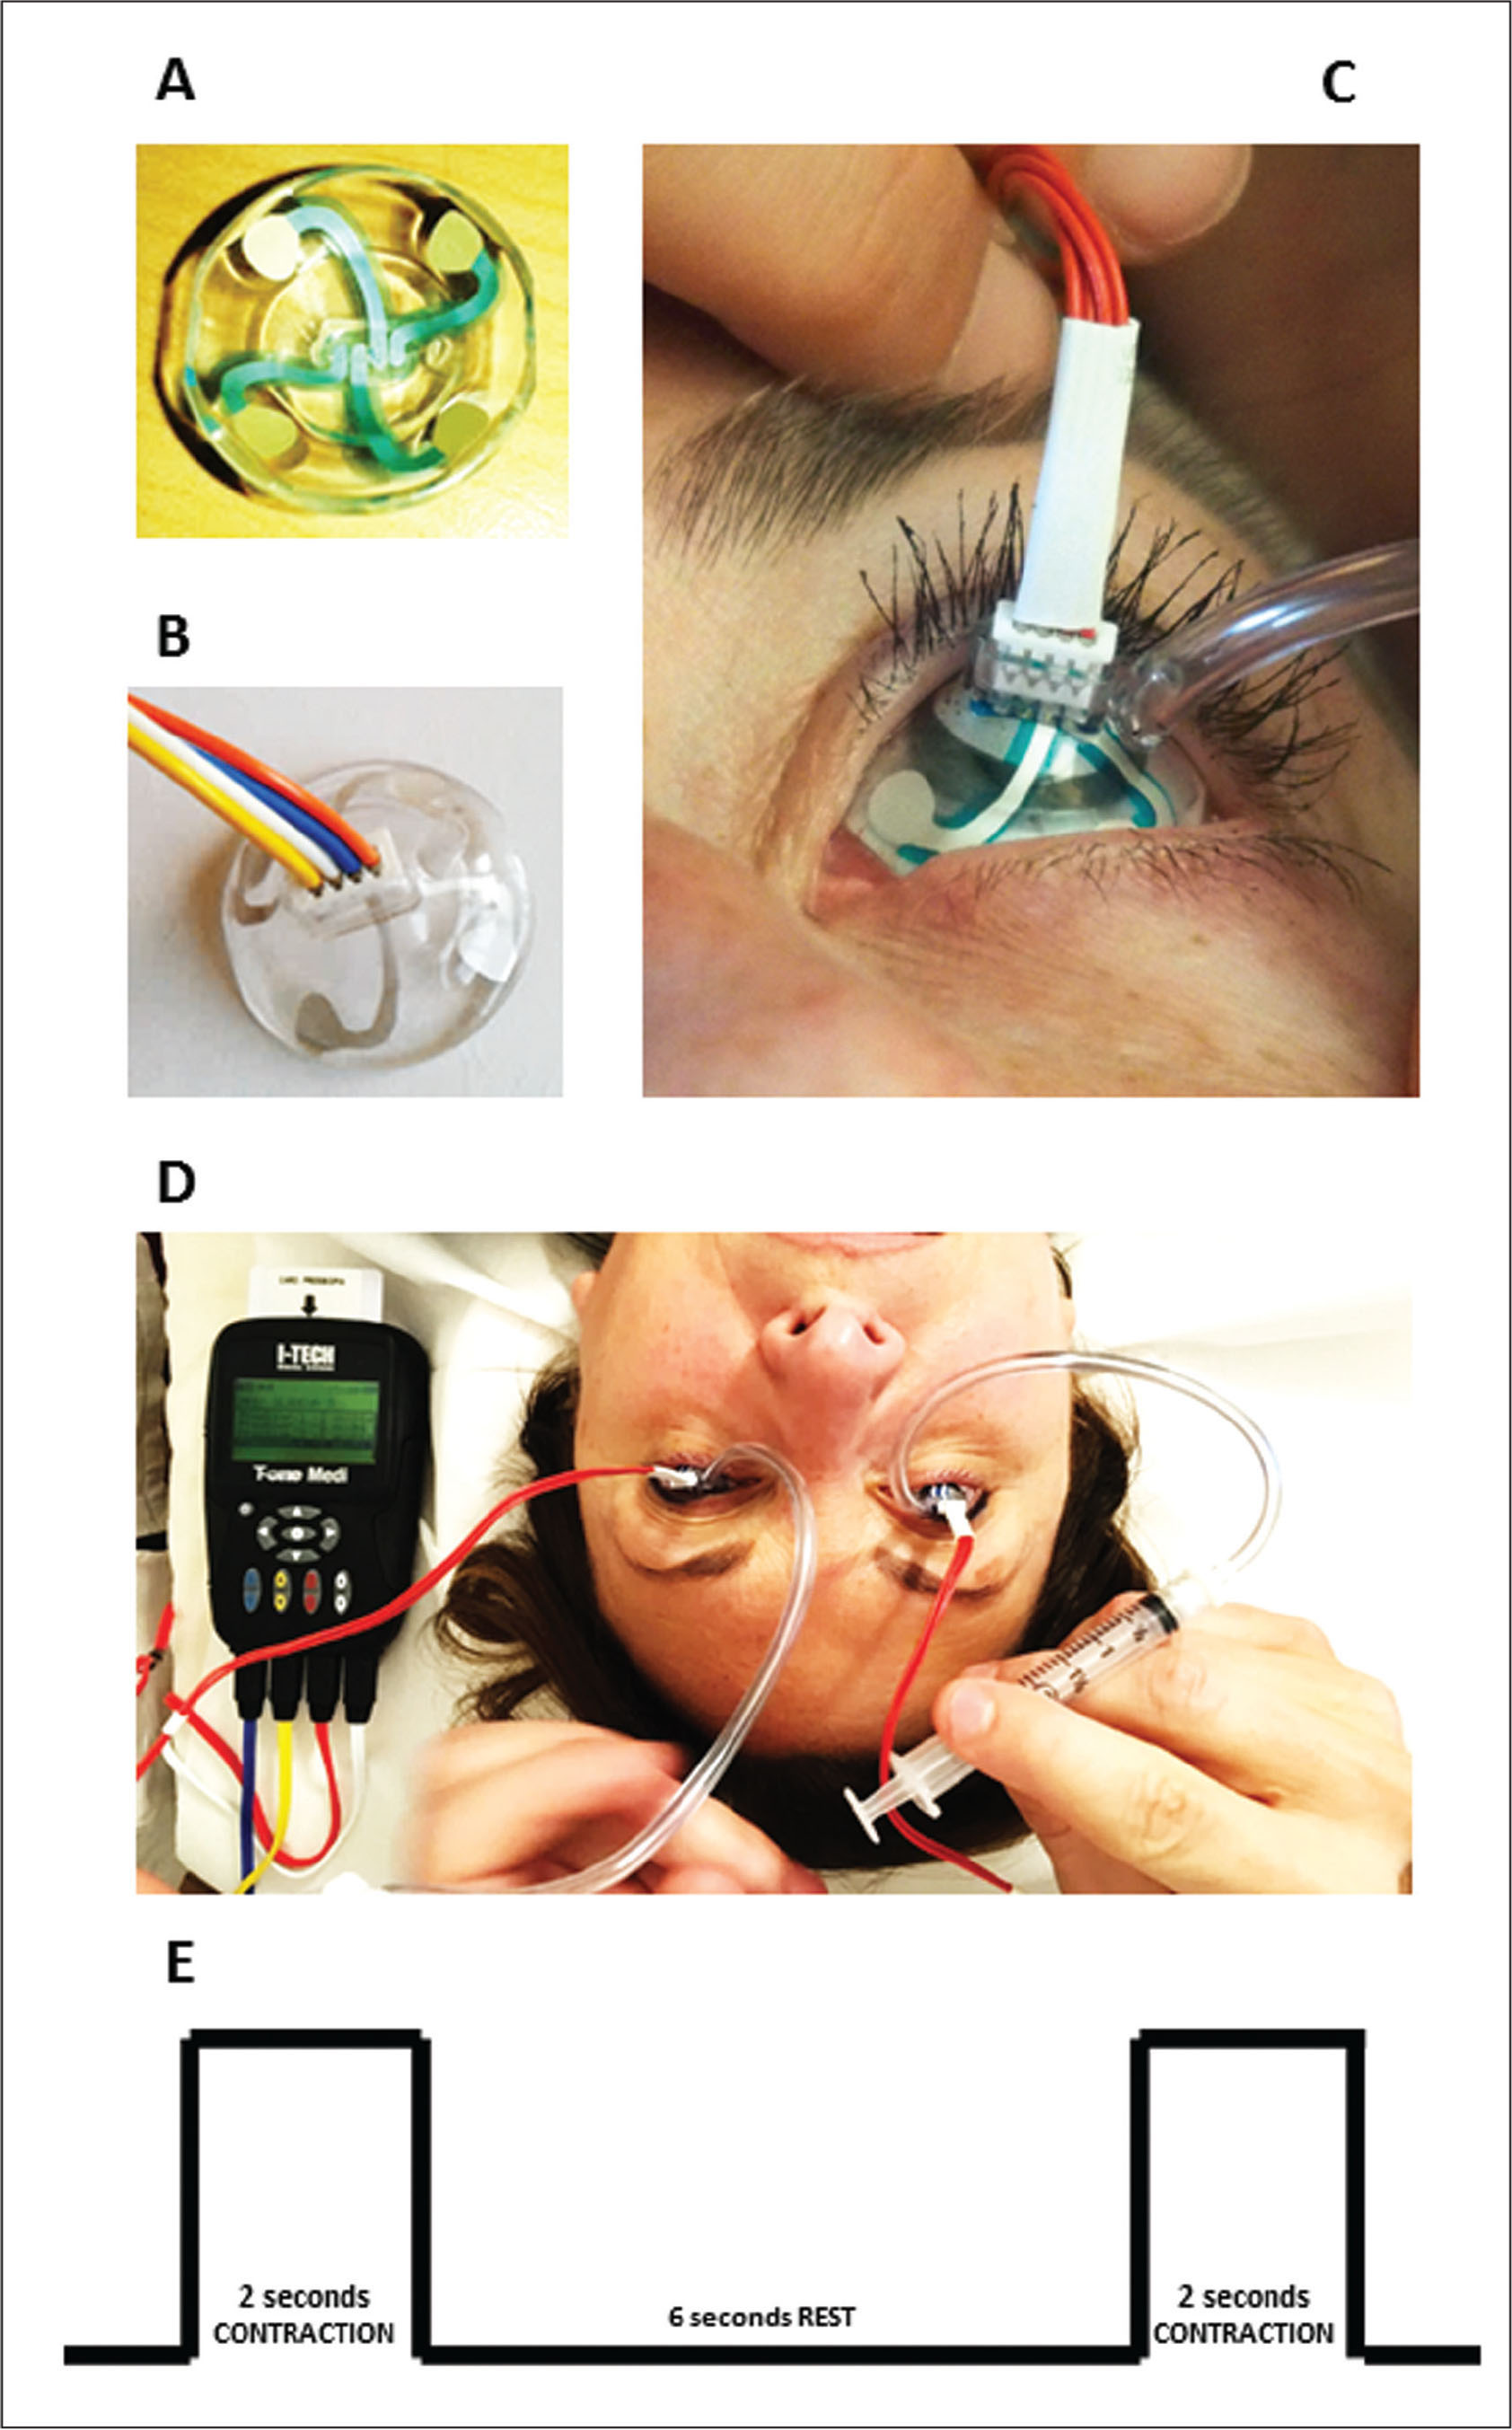 Illustration of the medical device for the electrostimulation of the ciliary muscle. (A) Bottom side of the lens showing the four electrode contacts. (B) Upper side of the lens showing the four cables to be connected to the power generator. (C) Positioning of the lenses on the ocular surface of a patient. (D) Power supply during a bilateral simultaneous treatment in which two scleral contact lenses in polycarbonate are stabilized by two syringes creating a vacuum and connected by cables directly to the Ocufit (Sooft; Montegiorgio, Italy) electrostimulator medical device. (E) Pulse trains are in the form of compensated biphasic square-waves. The graph illustrates treatment cycle sequences consisting in pulsed repetitions of 2 seconds of electrical impulse followed by 6 seconds of rest.